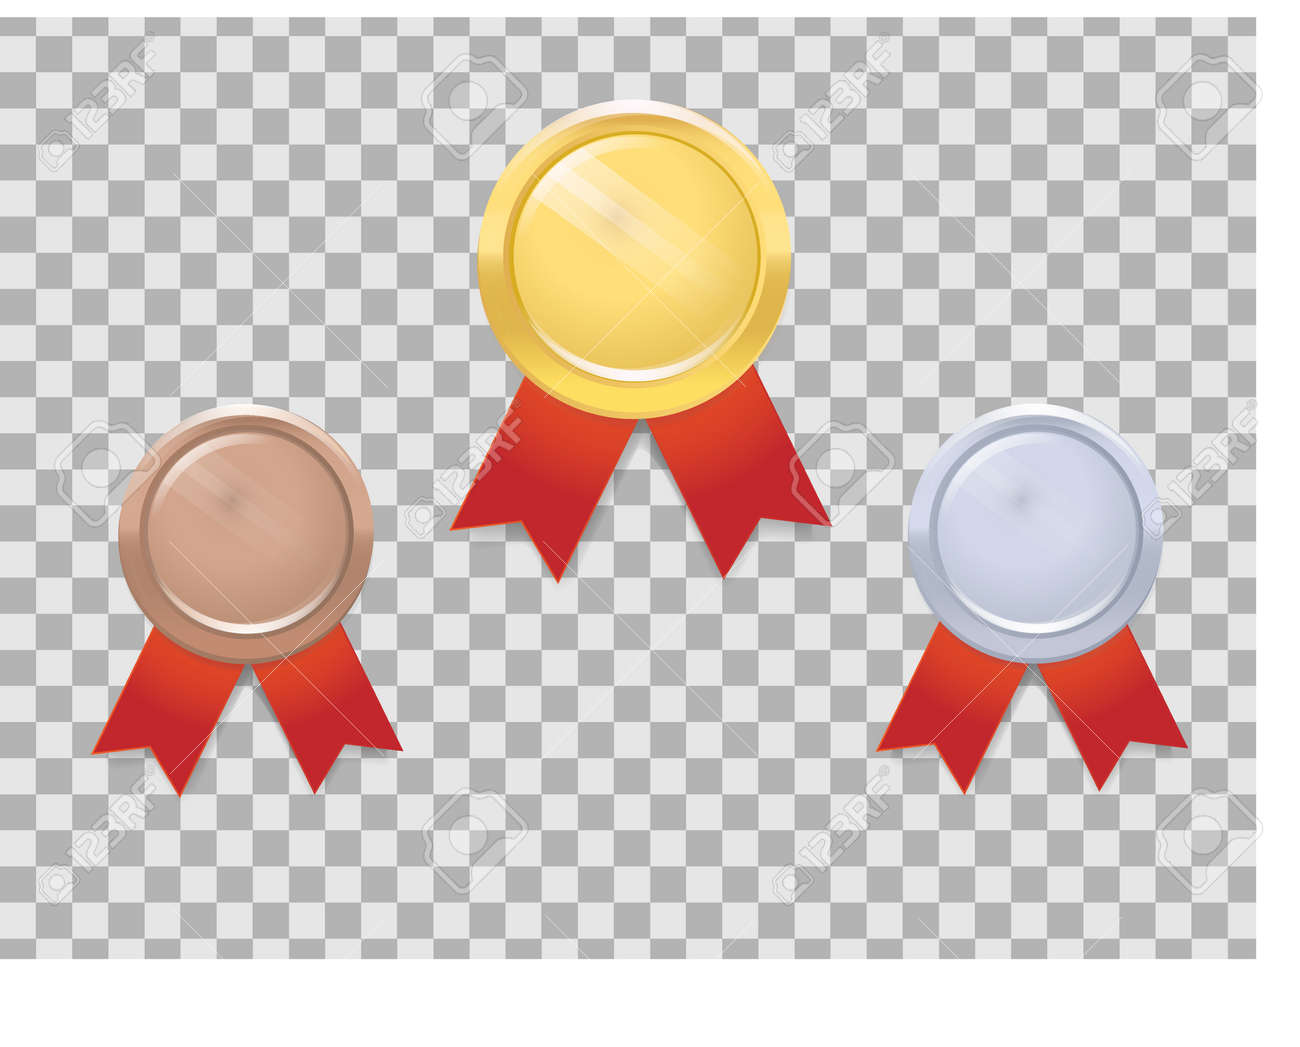 Set of gold, silver and bronze medals with red ribbon on transparent